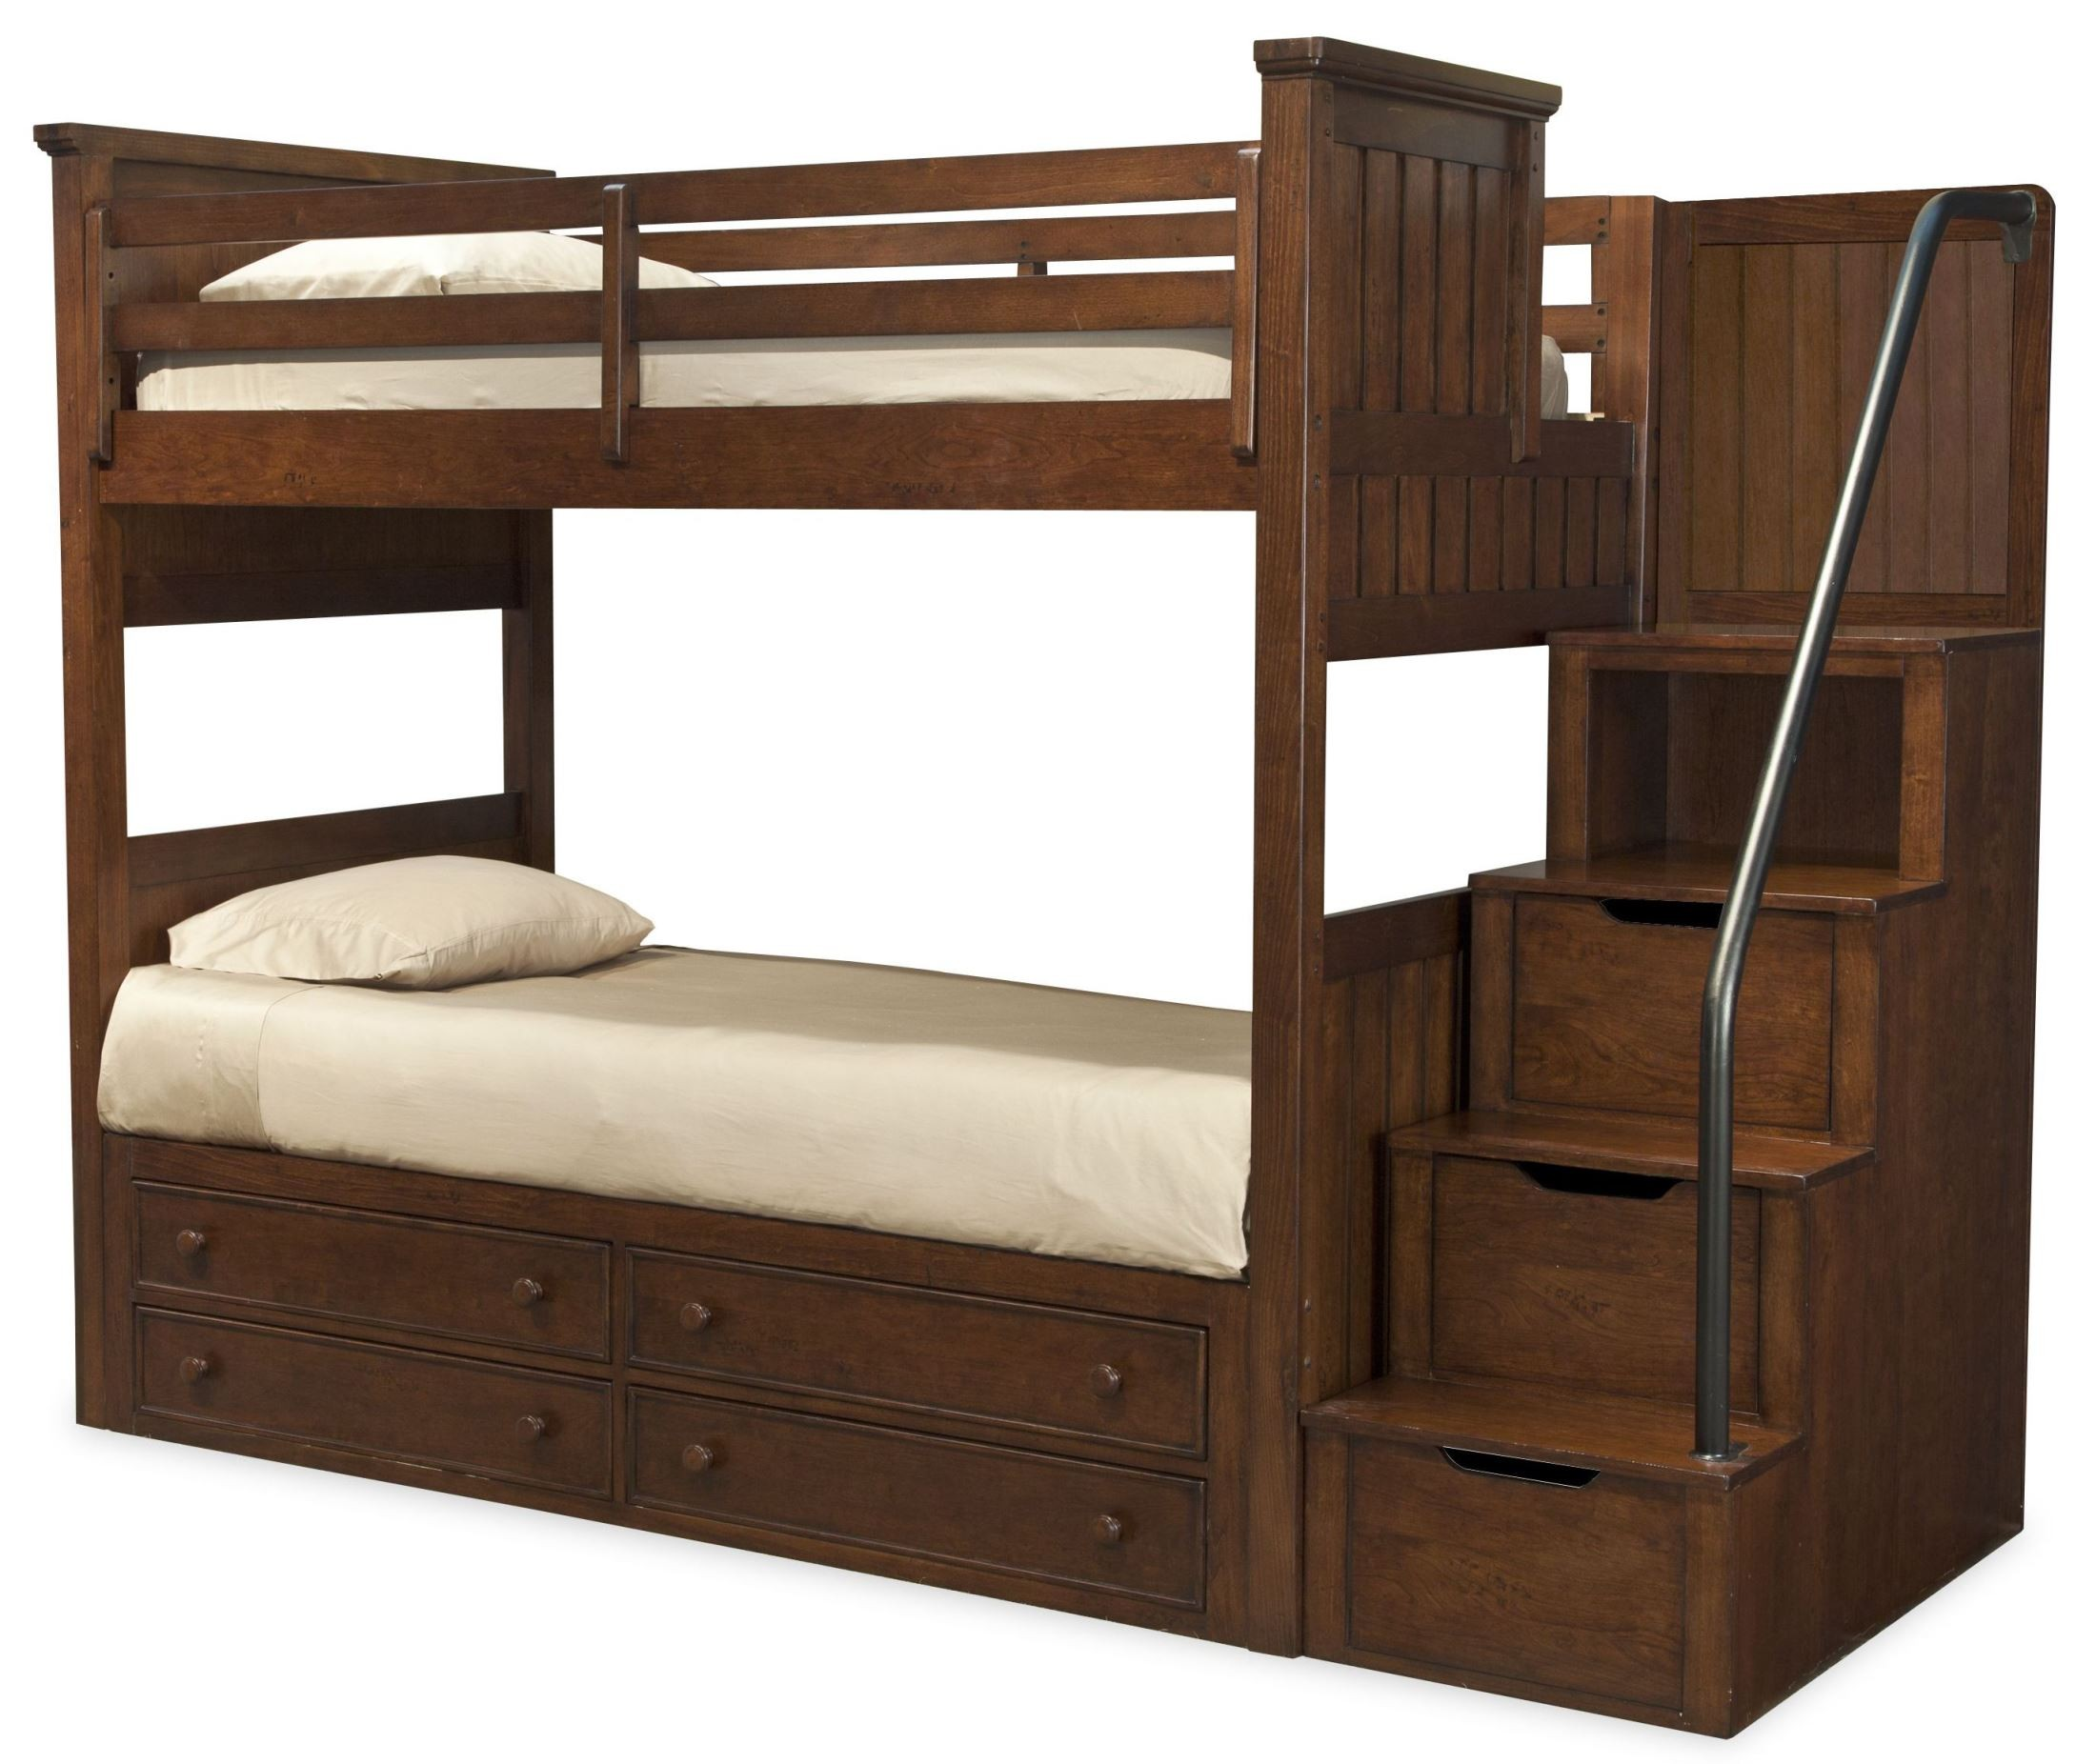 dawsons ridge twin over twin bunk bed with storage steps from legacy kids 2960 8505k 8000. Black Bedroom Furniture Sets. Home Design Ideas